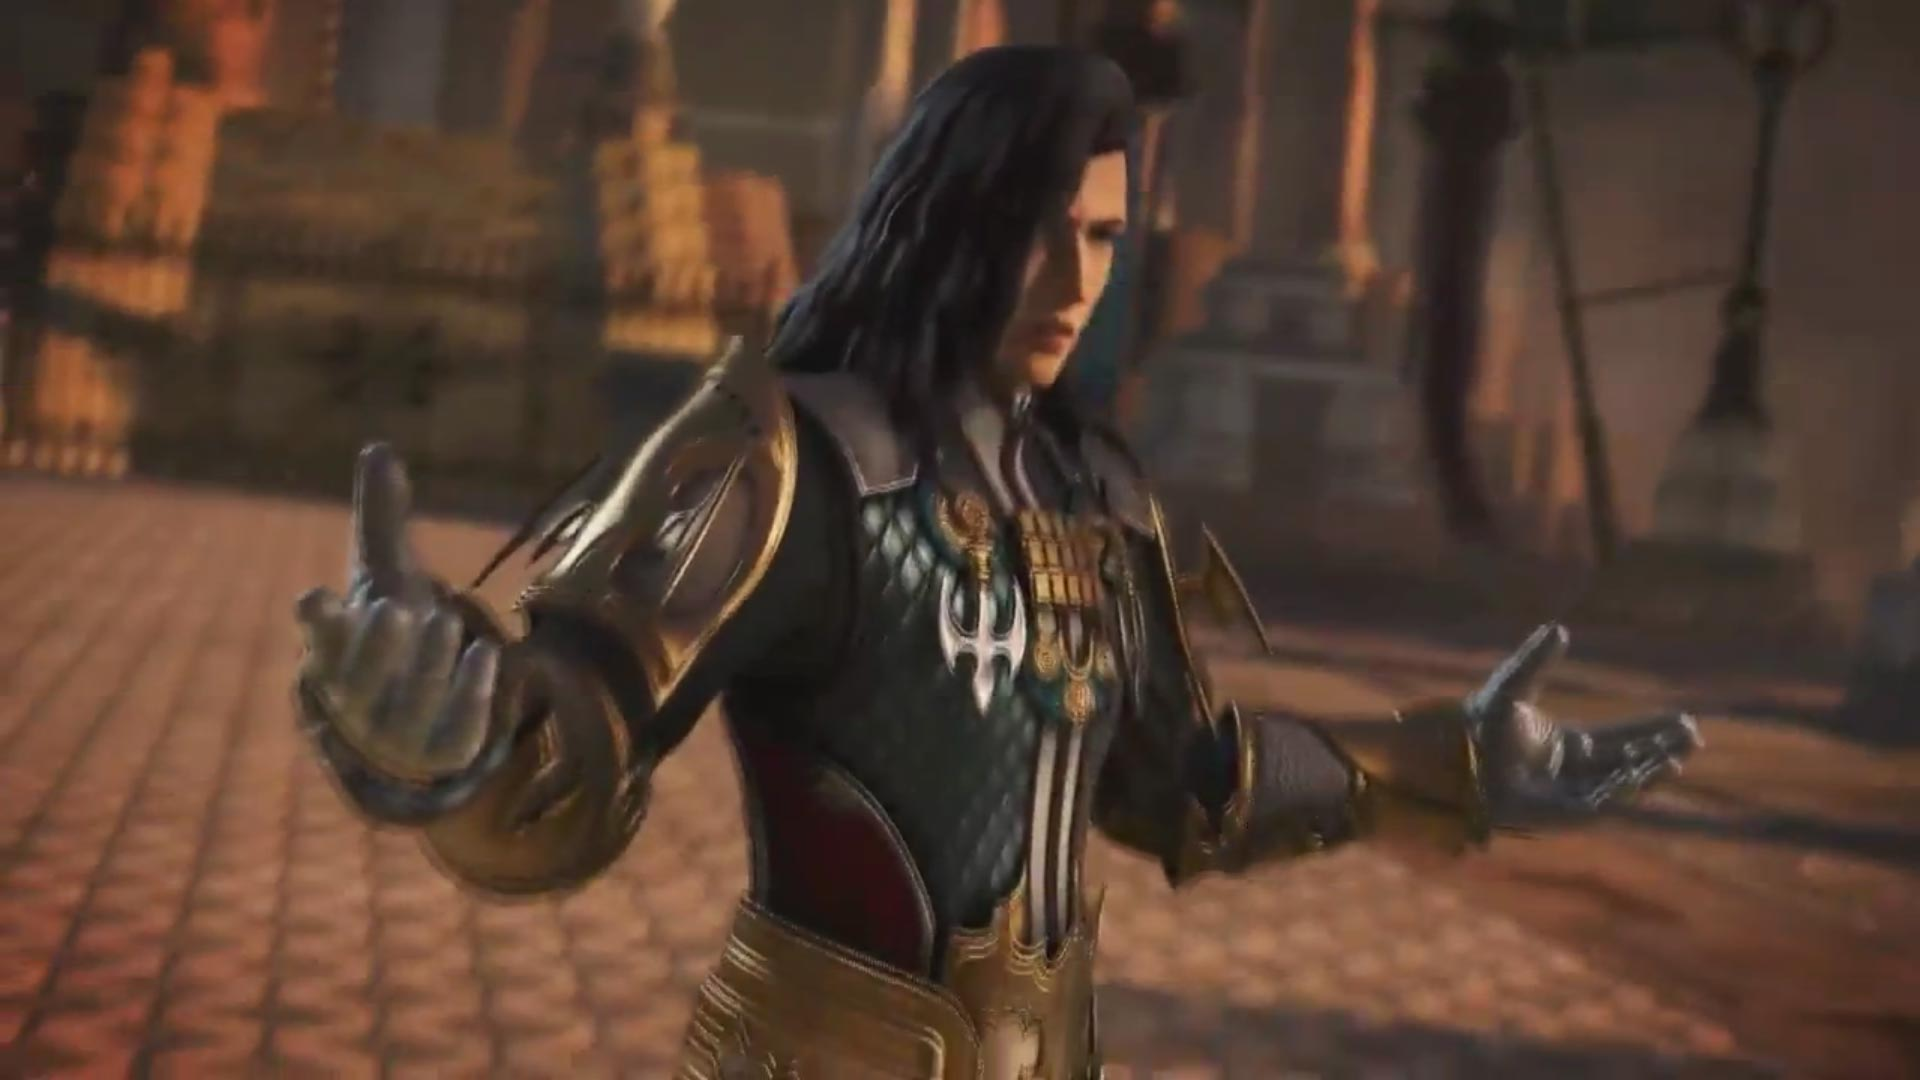 Dissidia Final Fantasy NT Vayne Reveal 6 out of 12 image gallery